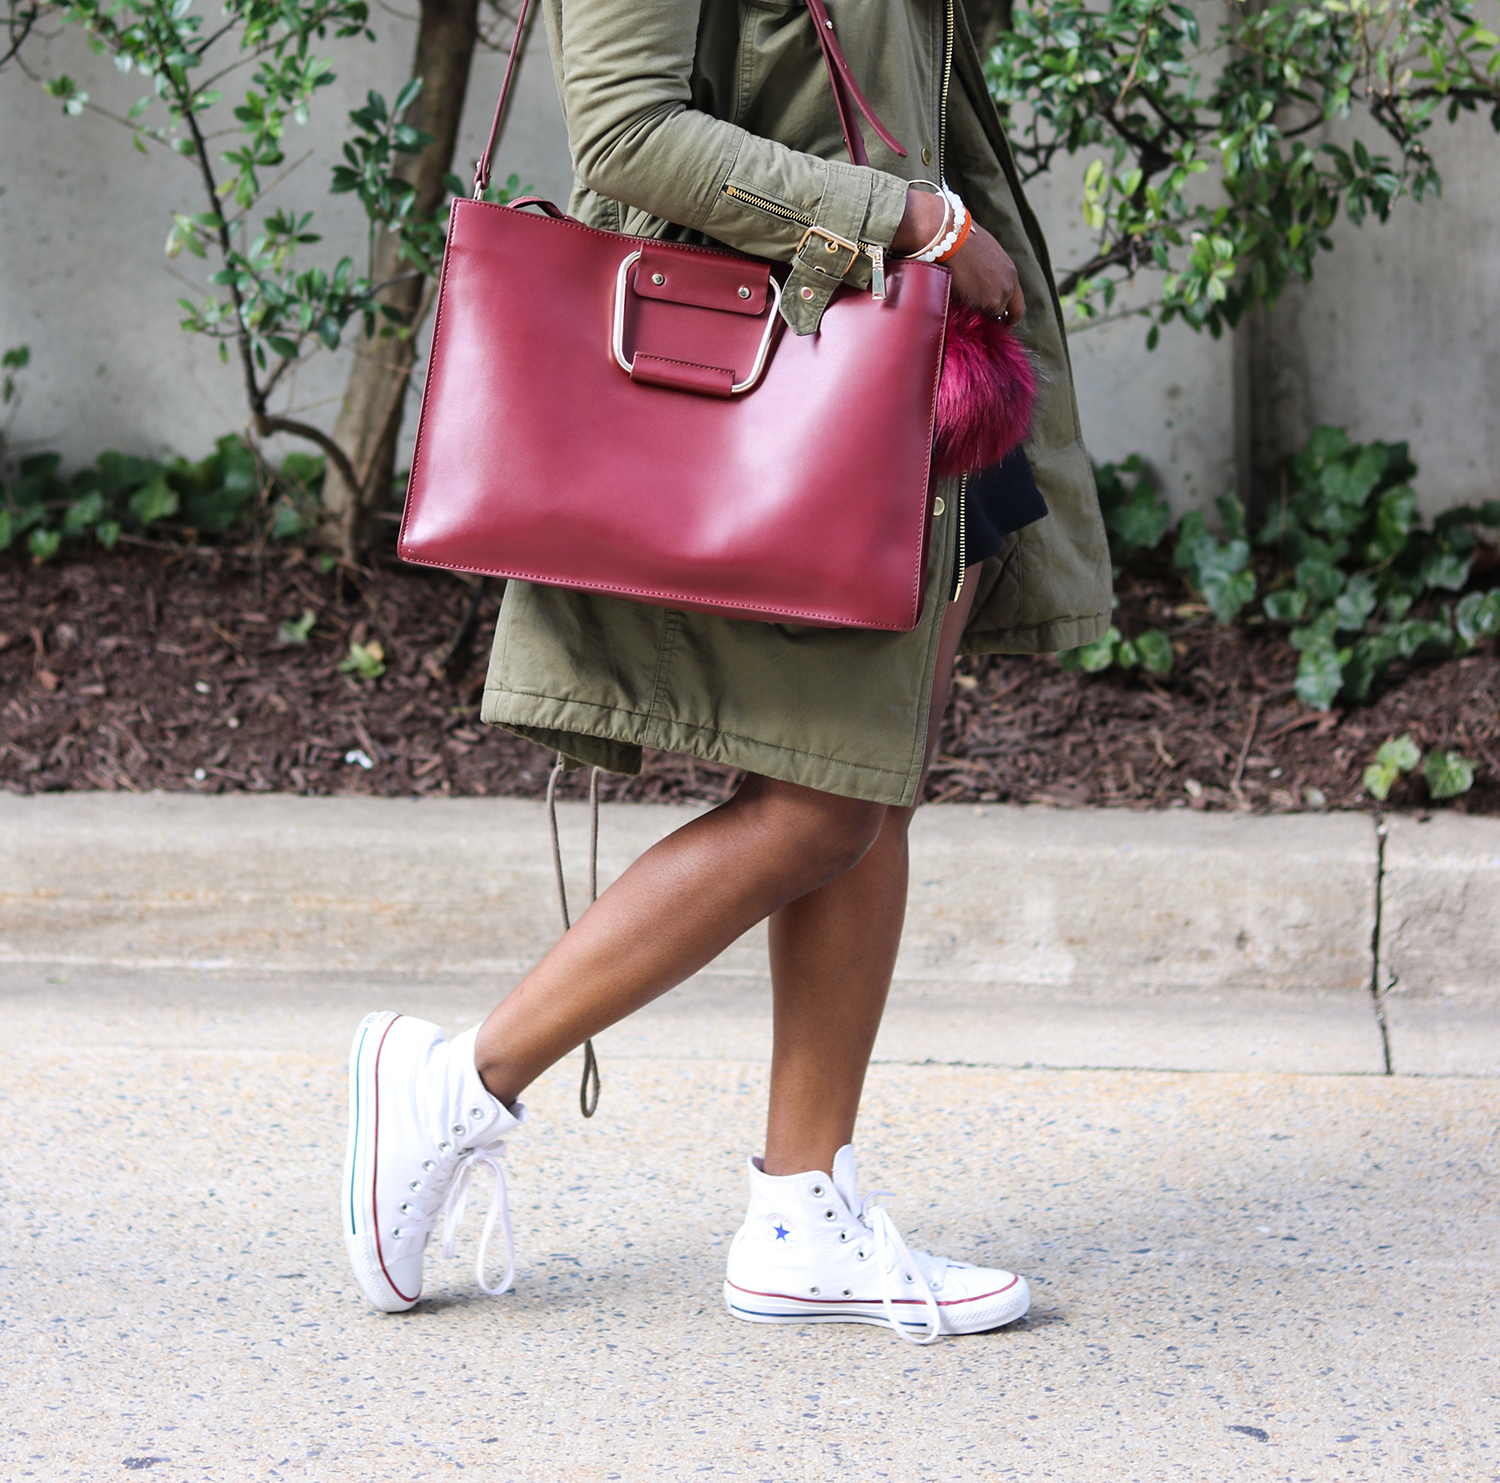 khaki parka and burgundy purse